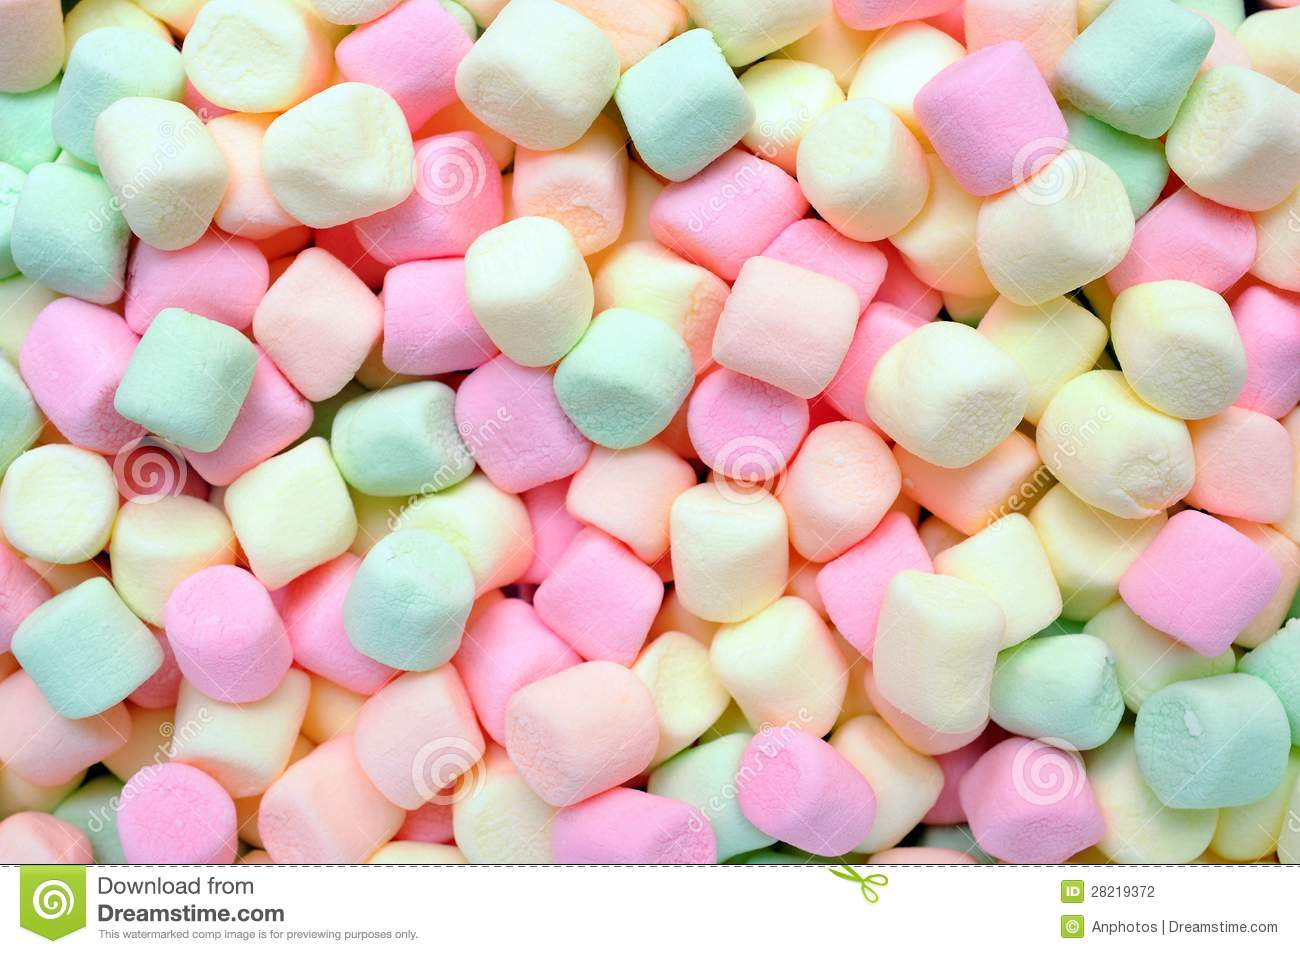 Colorful Marshmallows Stock Photography - Image: 28219372